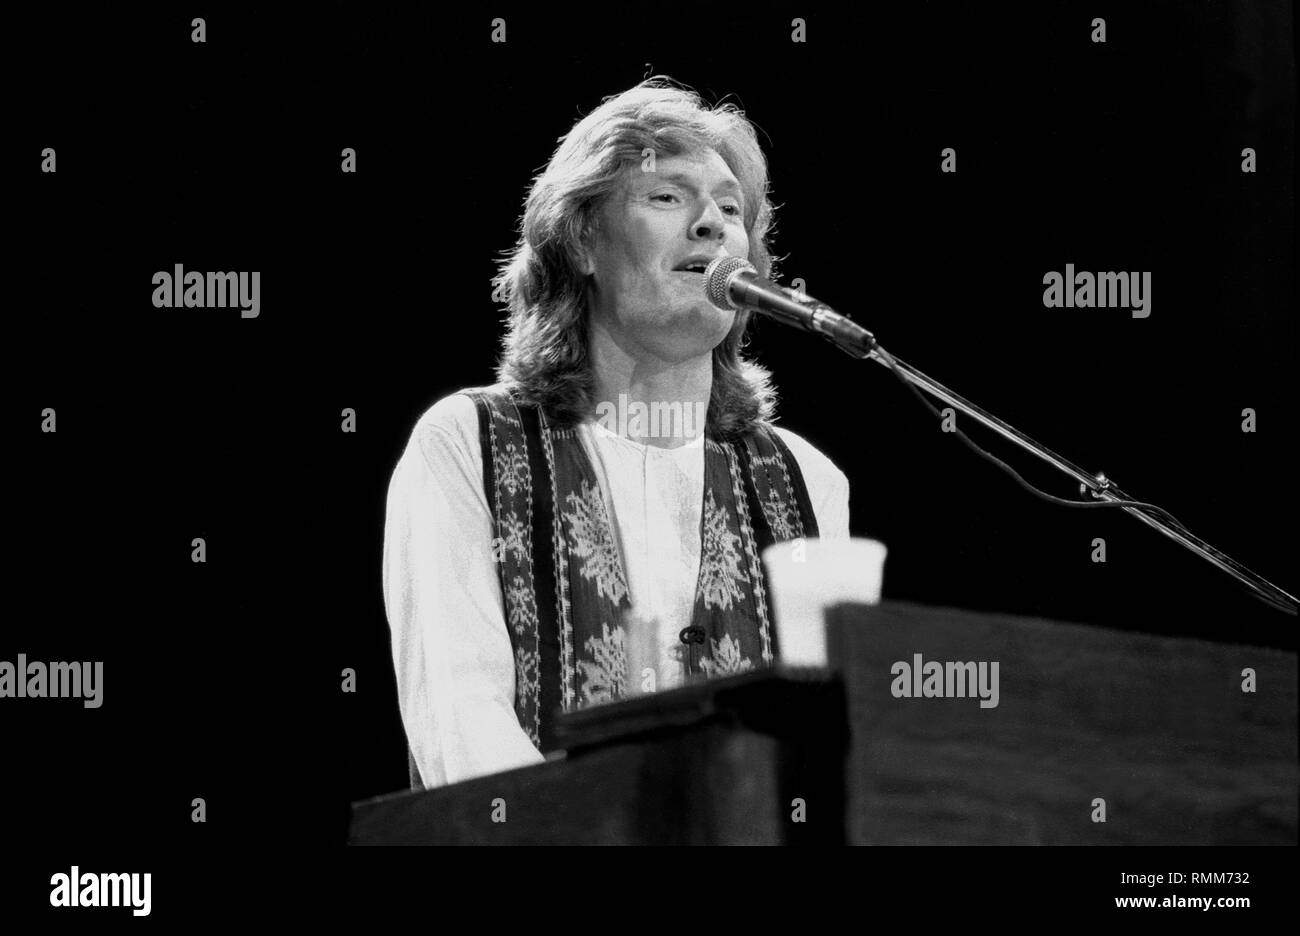 Singer, songwriter and multi-instrumentalist Steve Winwood, formerly of the the Spencer Davis Group, Traffic and Blind Faith, is shown performing on stage during 'live' concert appearance. - Stock Image